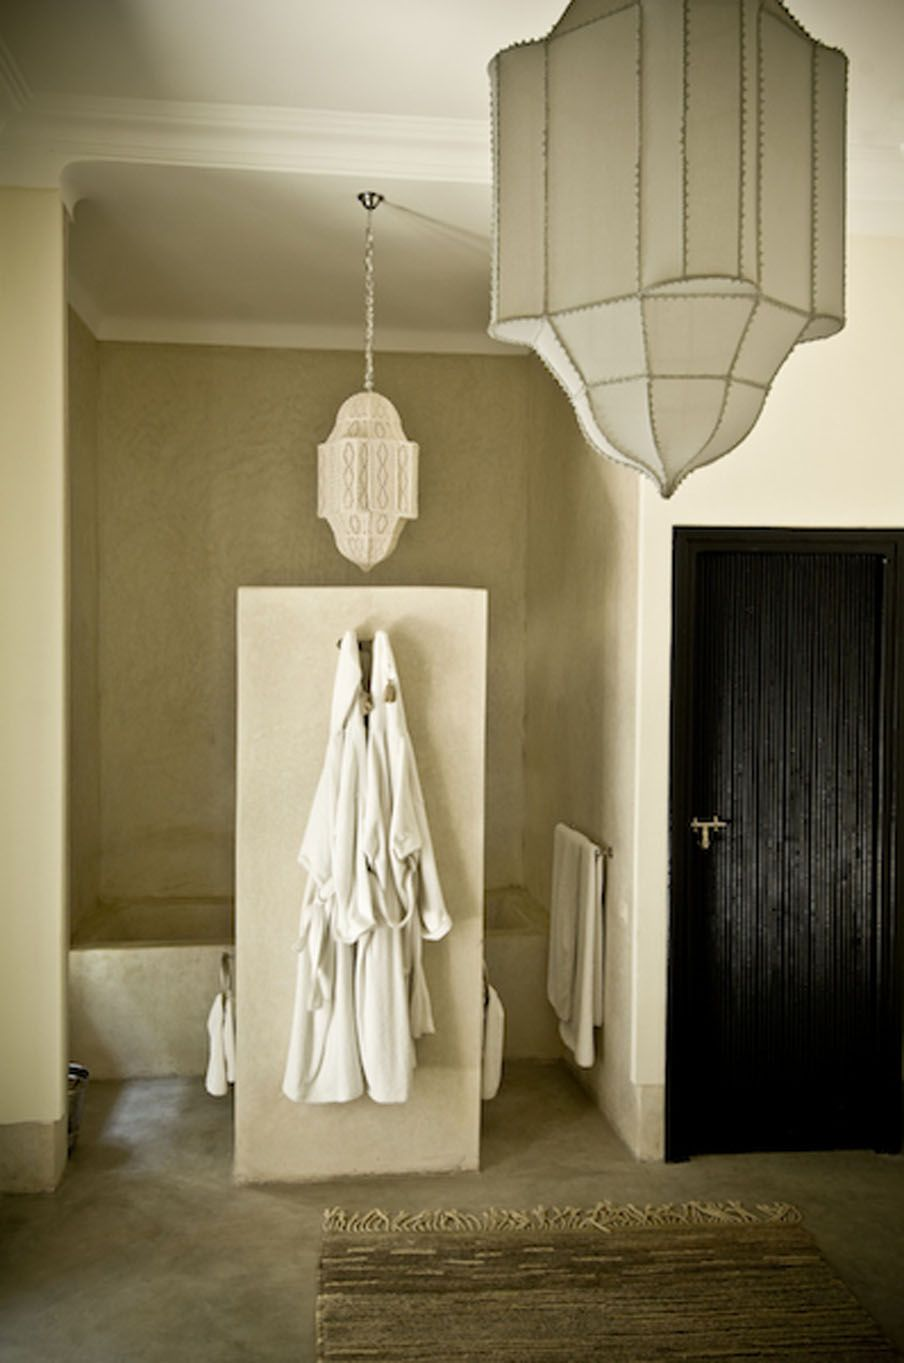 Riad First love it...! | inspiration "|904|1363|?|638c829e02ace99c541a86fb10724dc7|False|UNLIKELY|0.3025446832180023